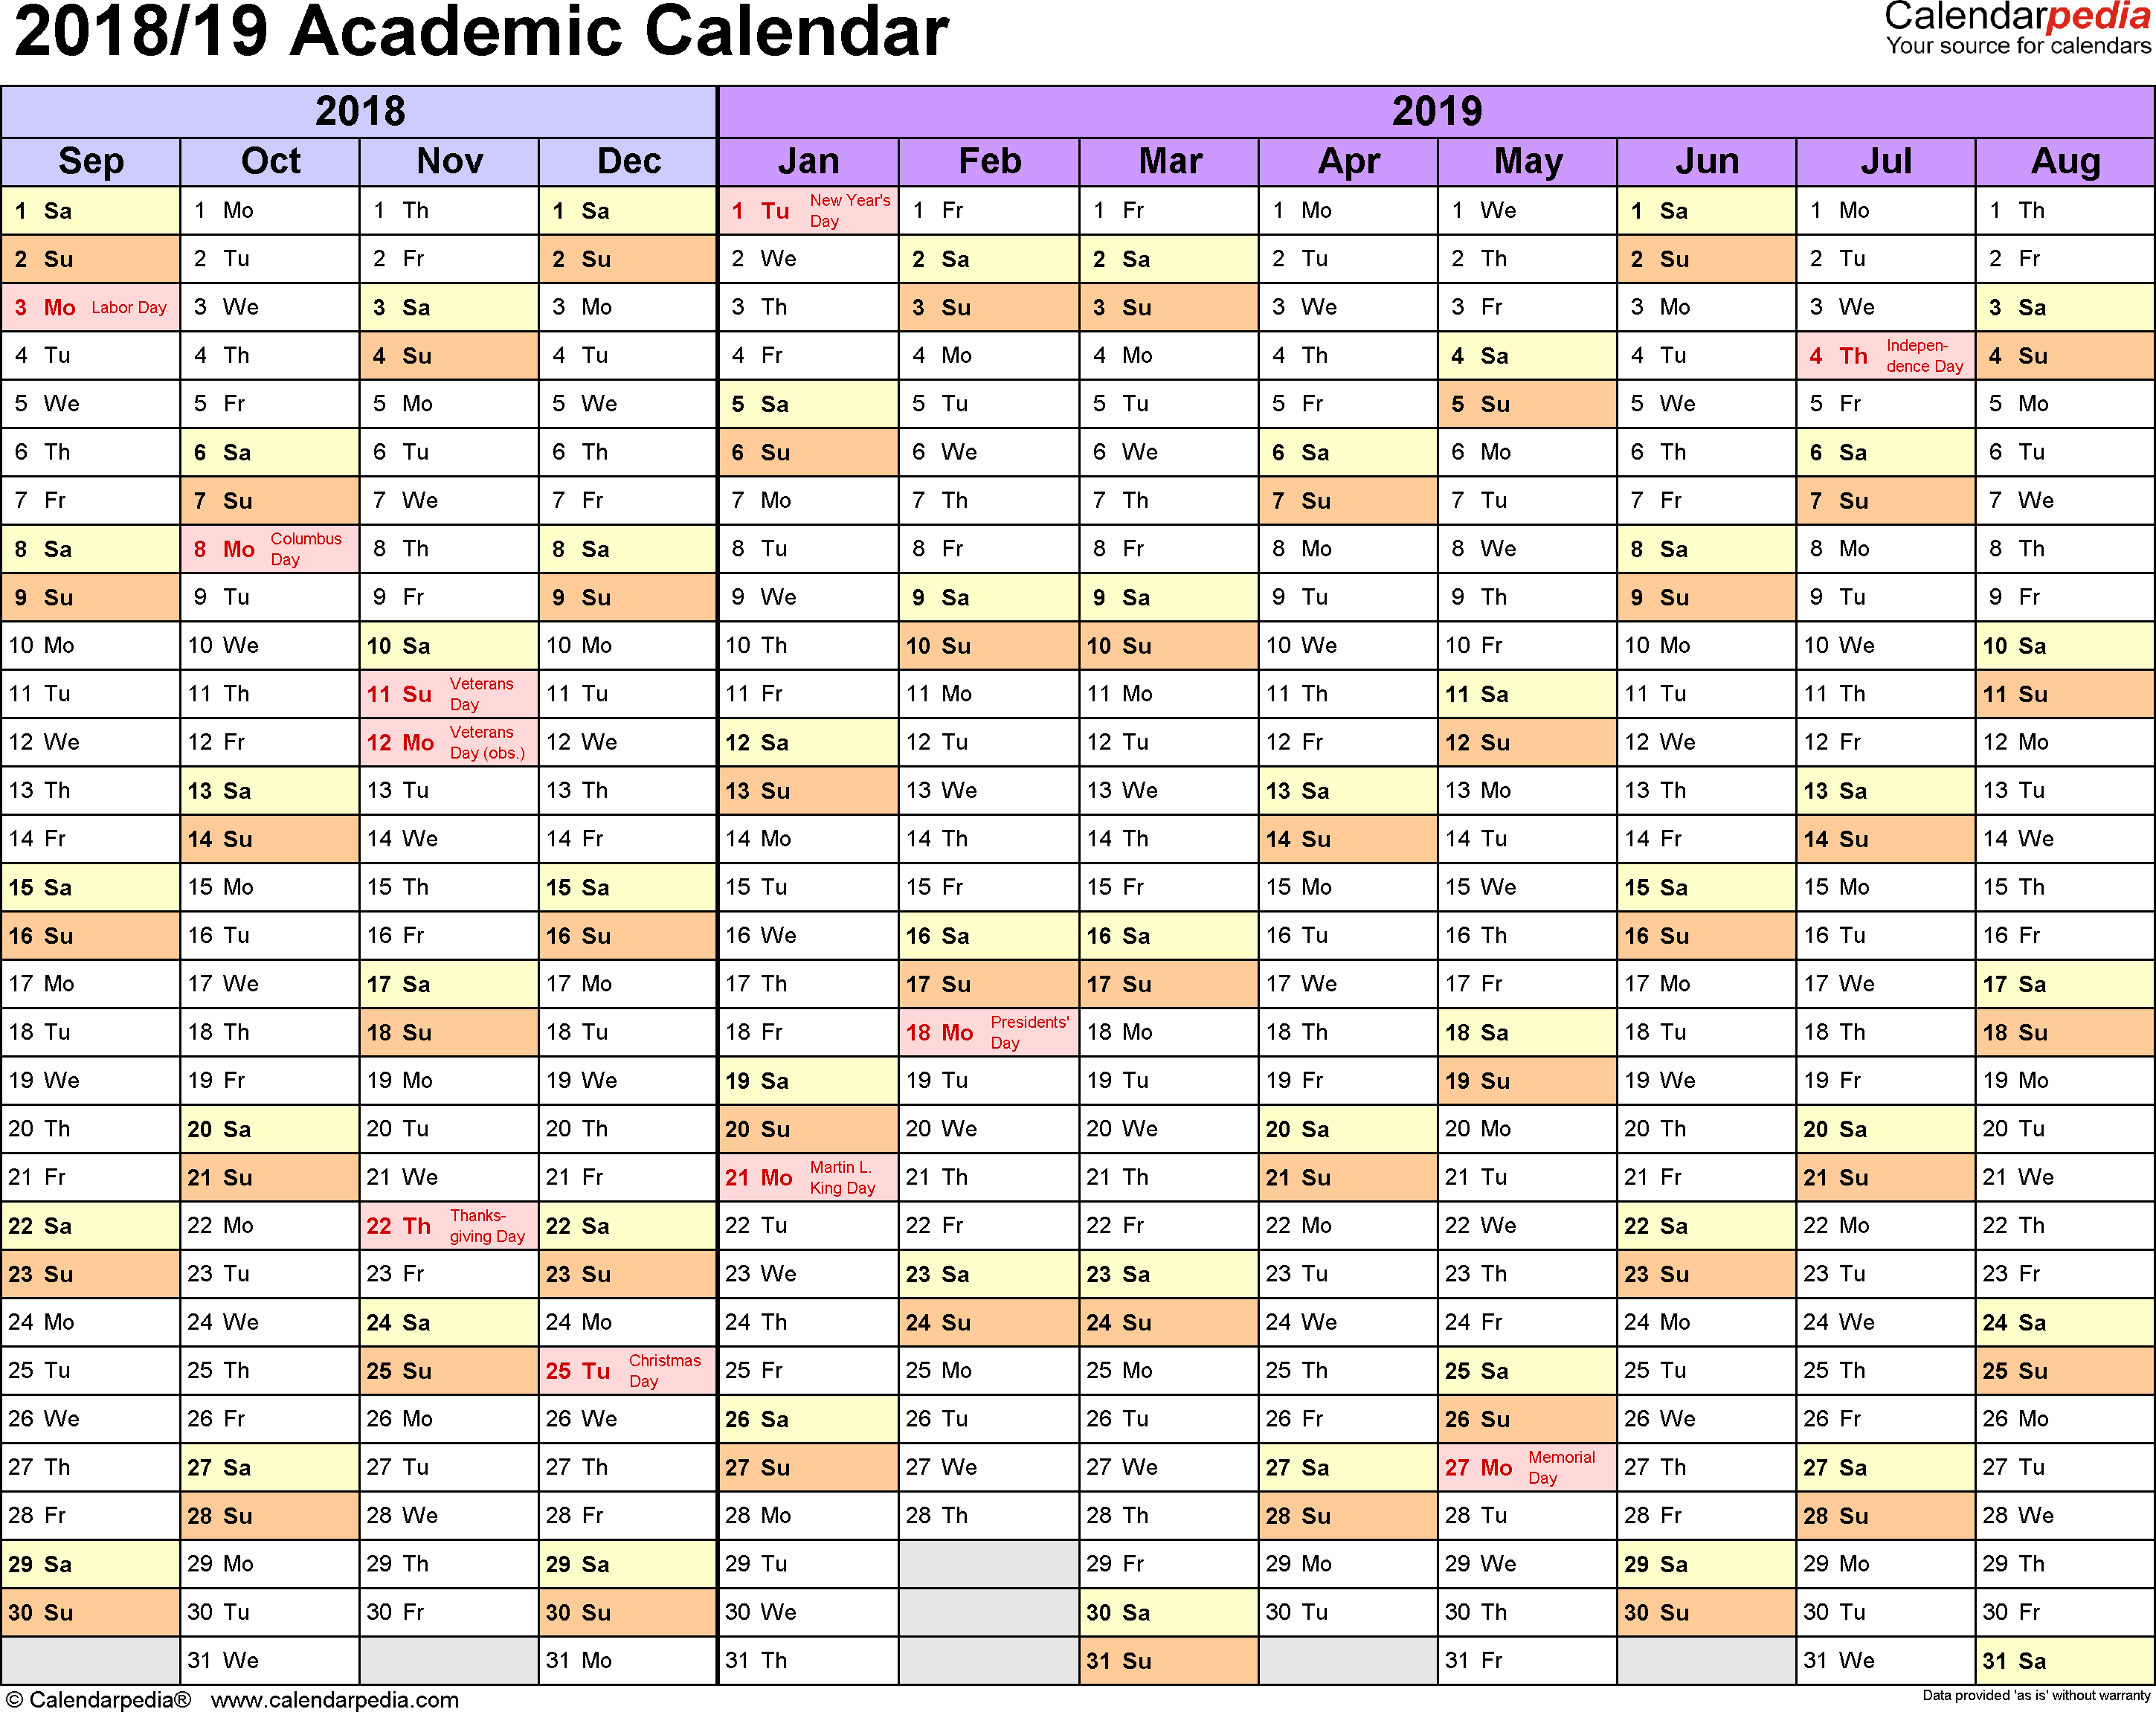 Template 1: Academic calendar 2018/19 for Excel, landscape orientation, months horizontally, 1 page